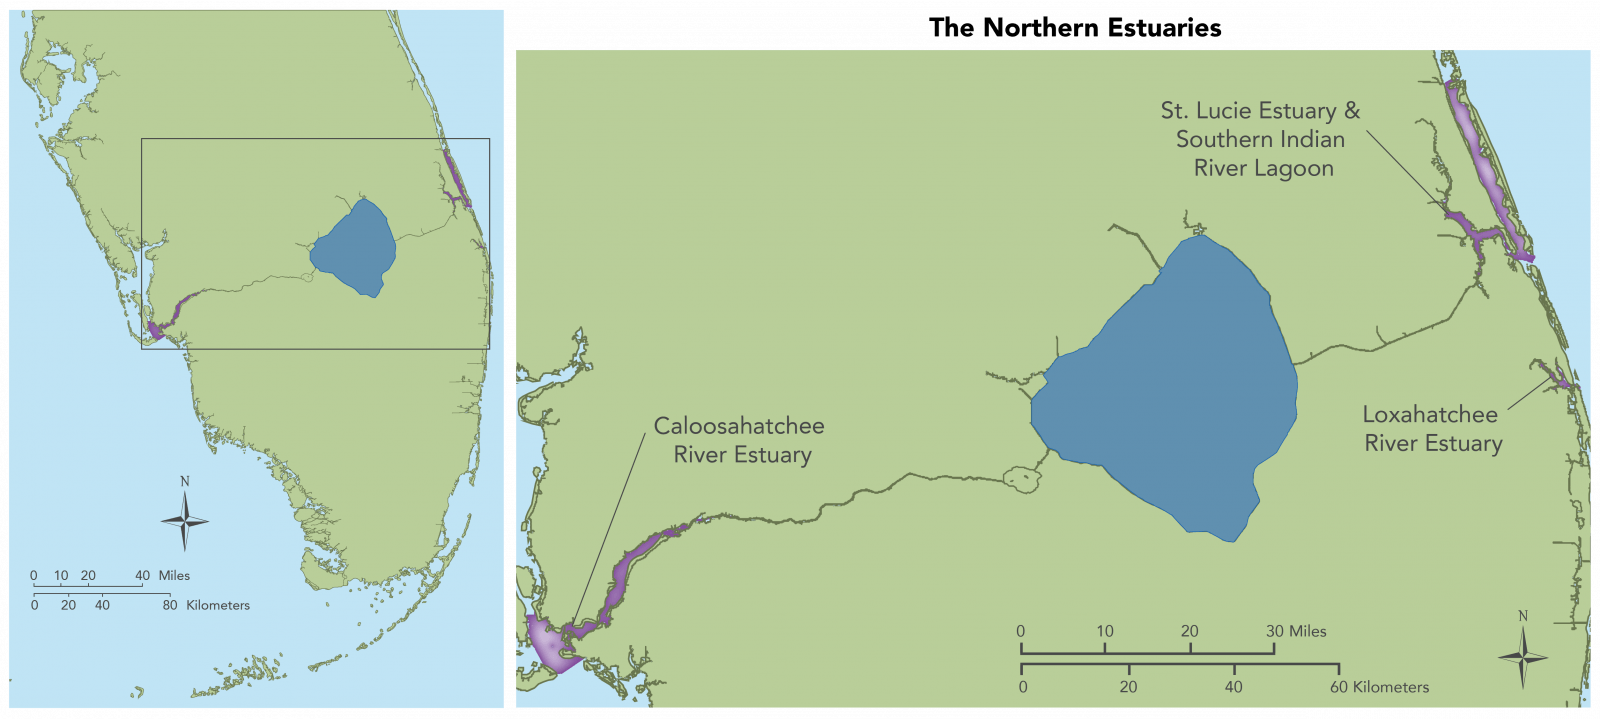 Map showing long view and detail view of the Northenr Estuaries. This includes the Caloosahatchee River Estuary, the St. Lucie Estuary and Southern Indian River Lagoon, and the Loxahatchee River Estuary